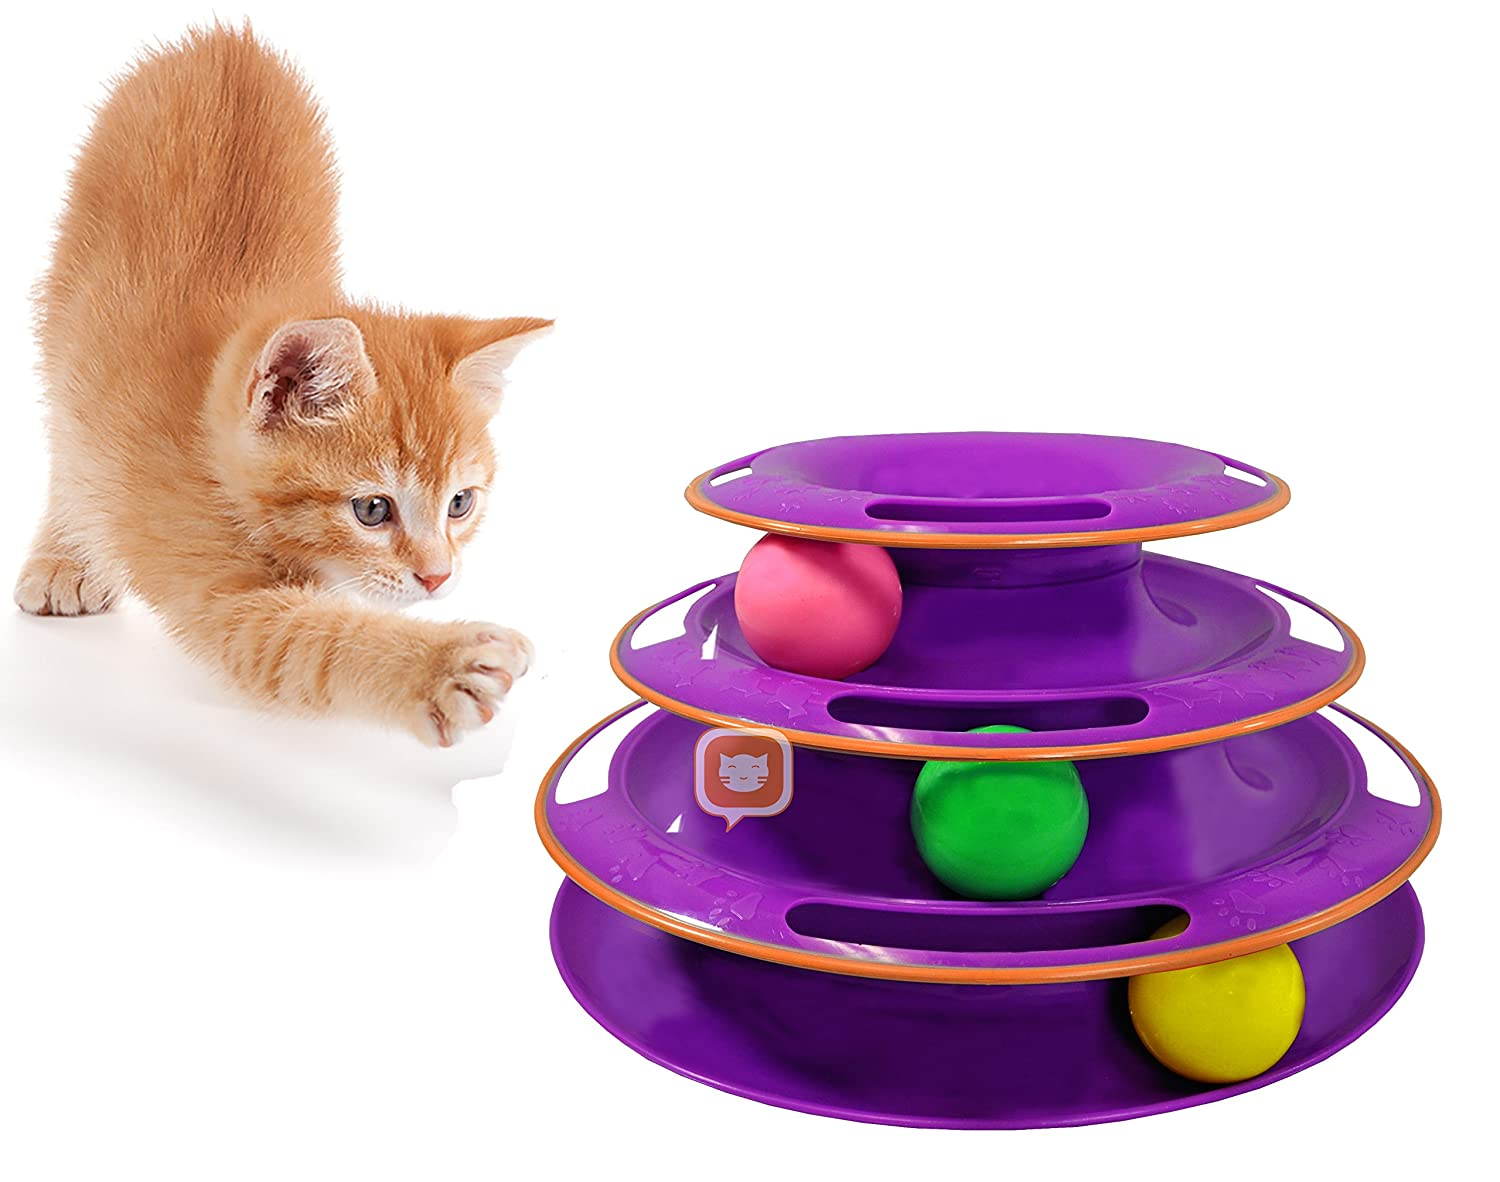 Purrfect Feline Titan's Tower - New Safer Bar Design, Interactive Cat Ball Toy, Exerciser Game, Teaser, Anti-Slip, Active Healthy Lifestyle, Suitable for Multiple Cats